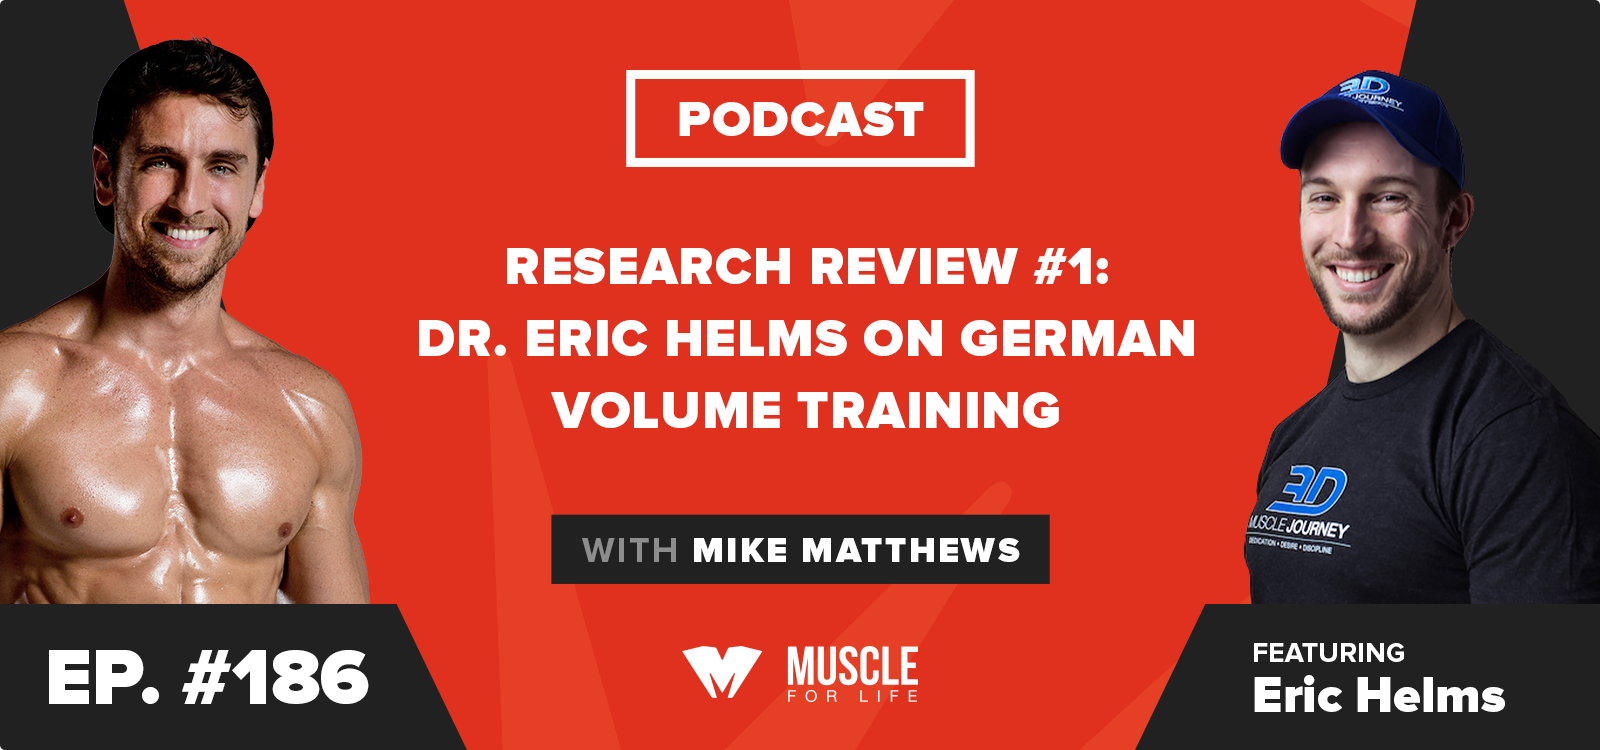 Research Review: Dr. Eric Helms on German Volume Training